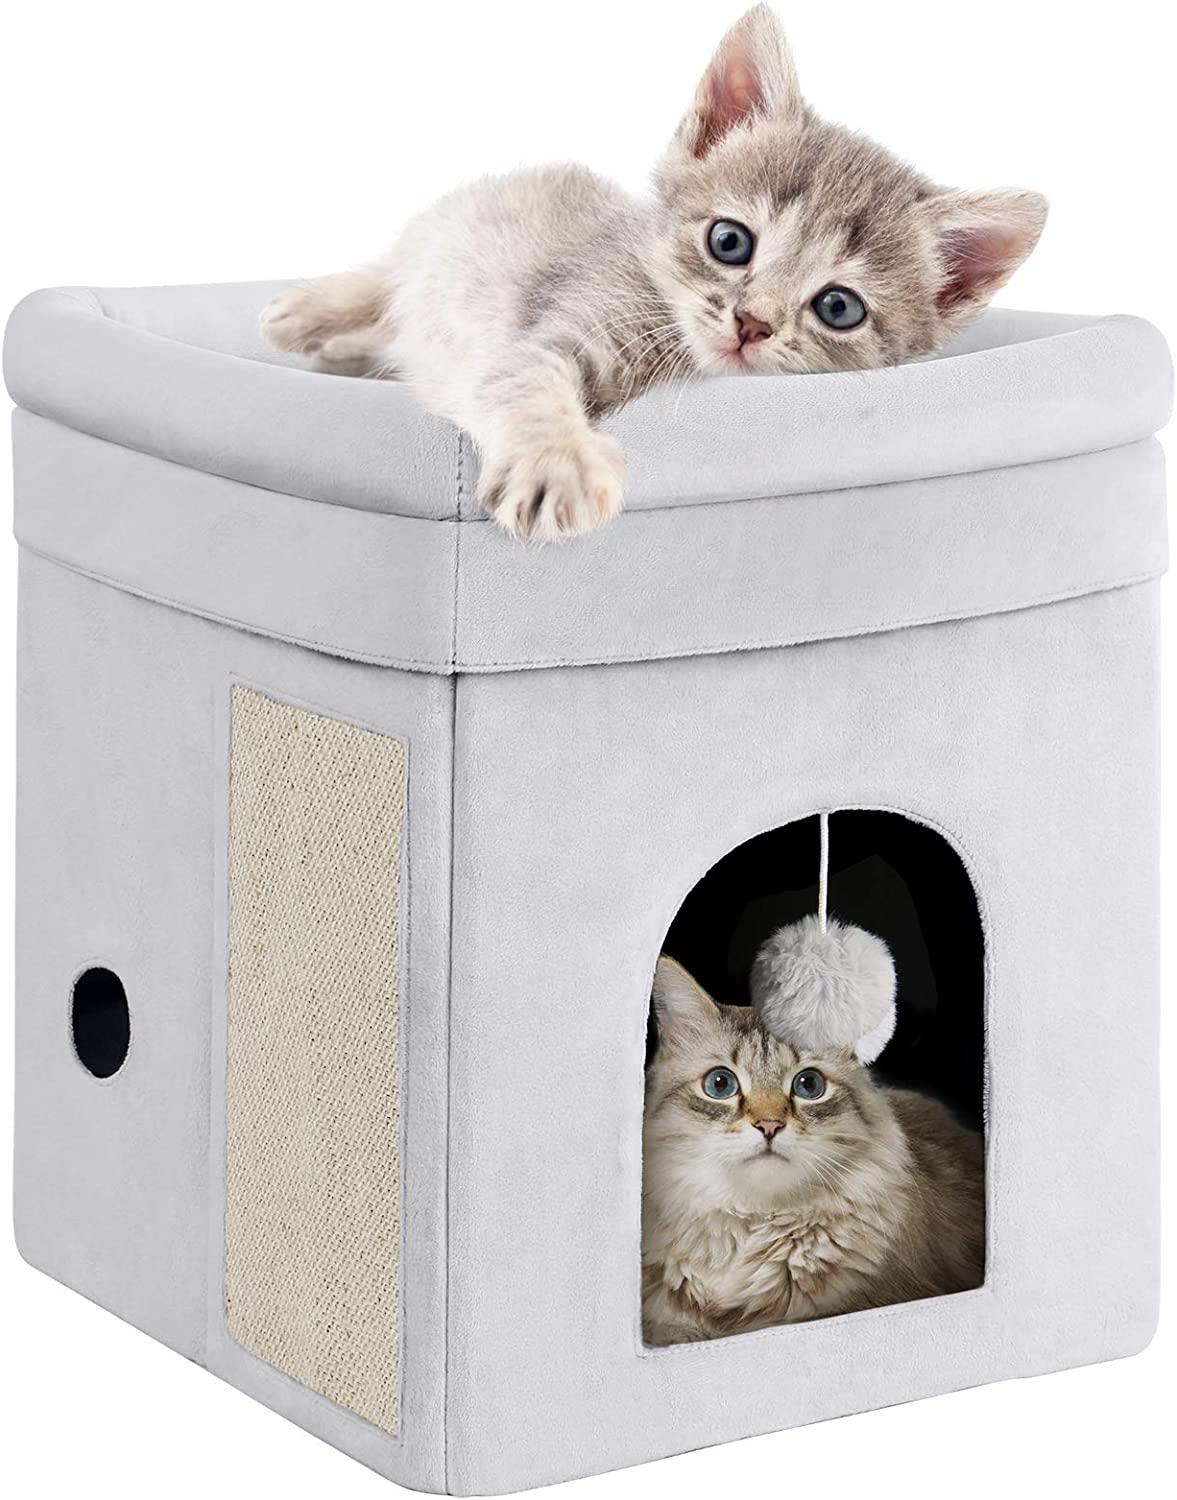 Mancro Cat House with Bed, Cat Cube Machine Washable Design, Foldable Cat Hiding Place with Cat Scratch Board & Cat Ball, Sturdy Construction and Non-Slip Indoor Cat Bed for Kitty 14x14x16inch, Grey